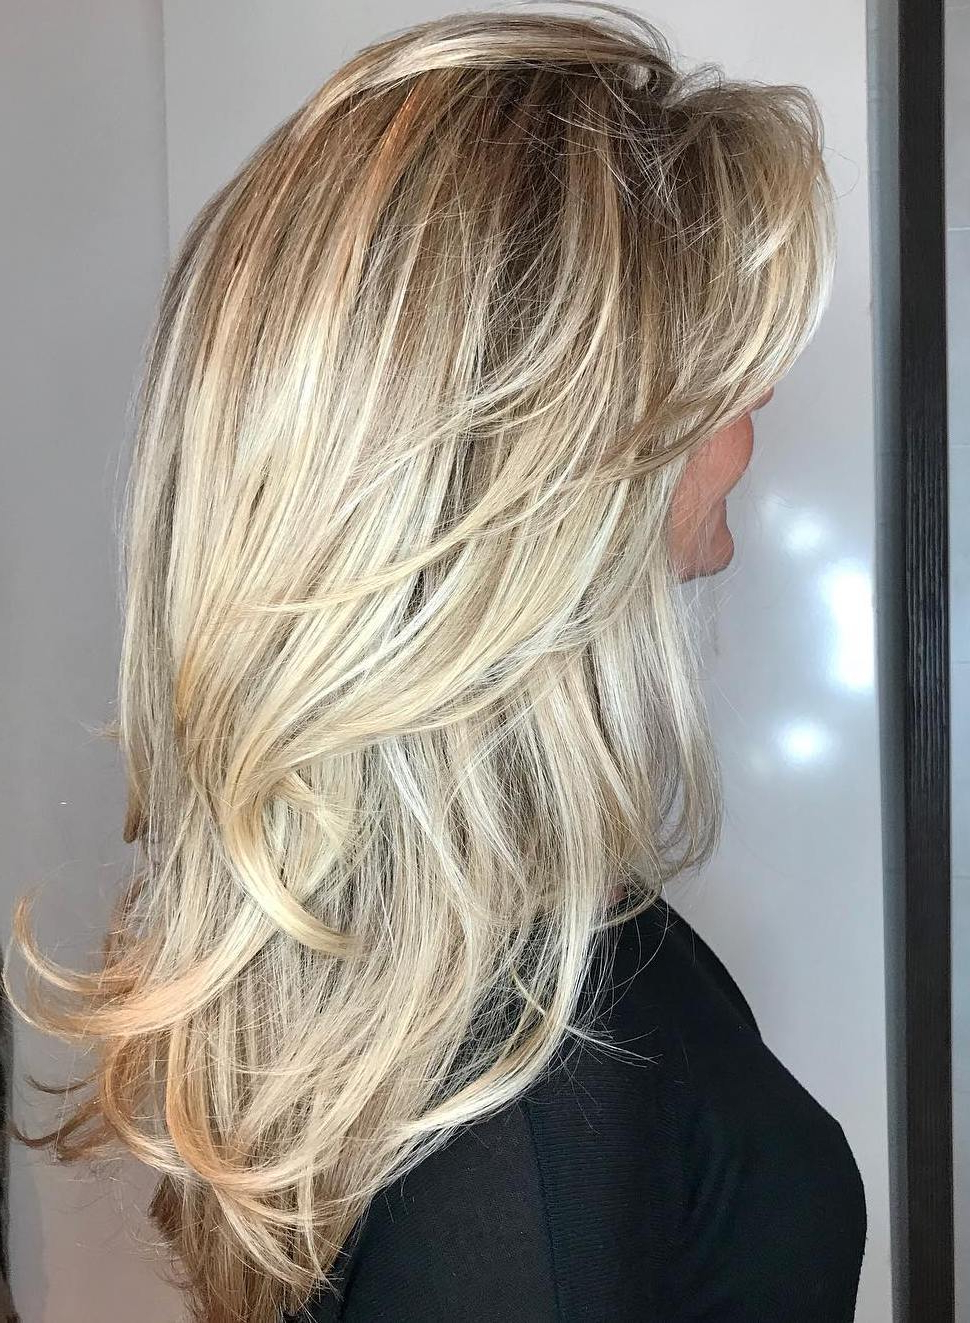 50 Cute Long Layered Haircuts With Bangs 2019 Intended For Most Up To Date Farrah Fawcett Like Layers For Long Hairstyles (View 10 of 20)